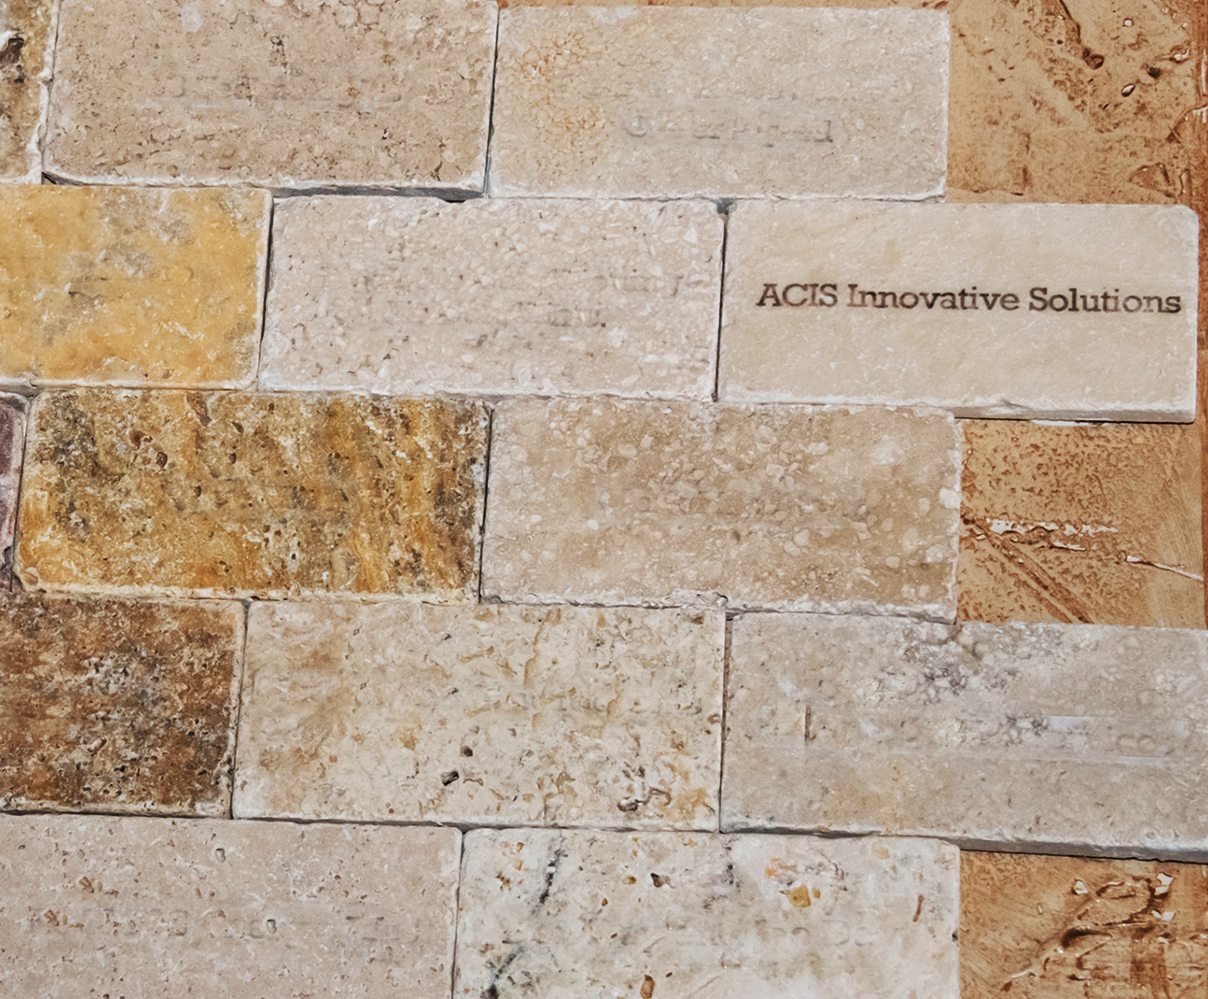 Marbled bricks with ACIS Innovation Solutions text